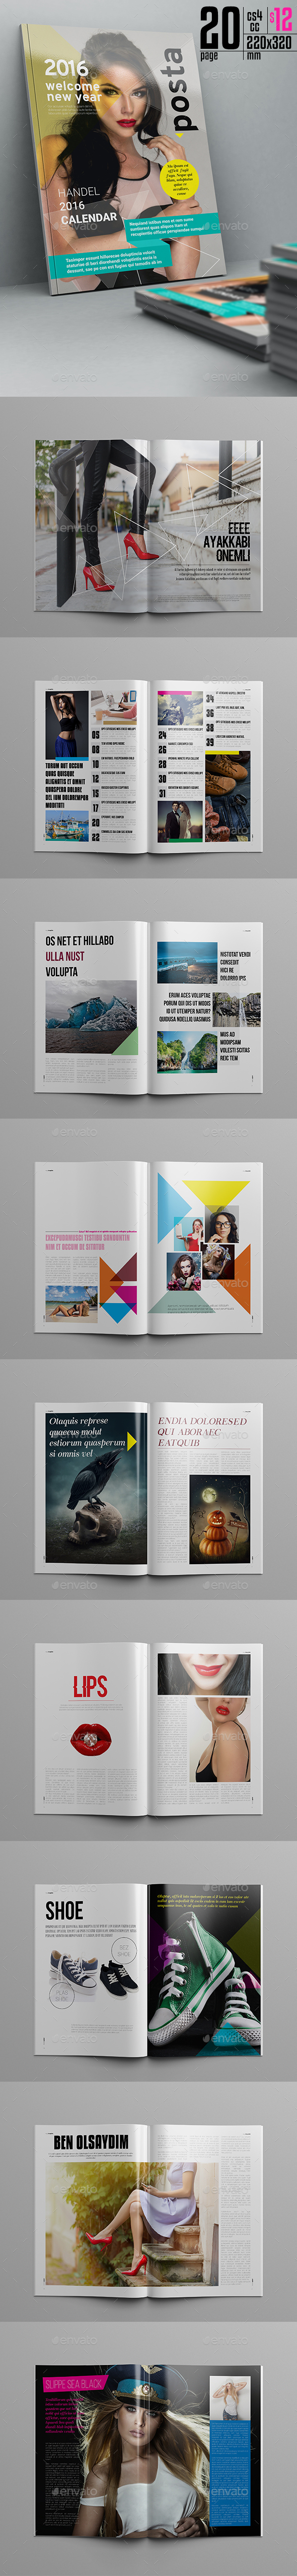 Posta Magazine Template 20 Pages - Magazines Print Templates